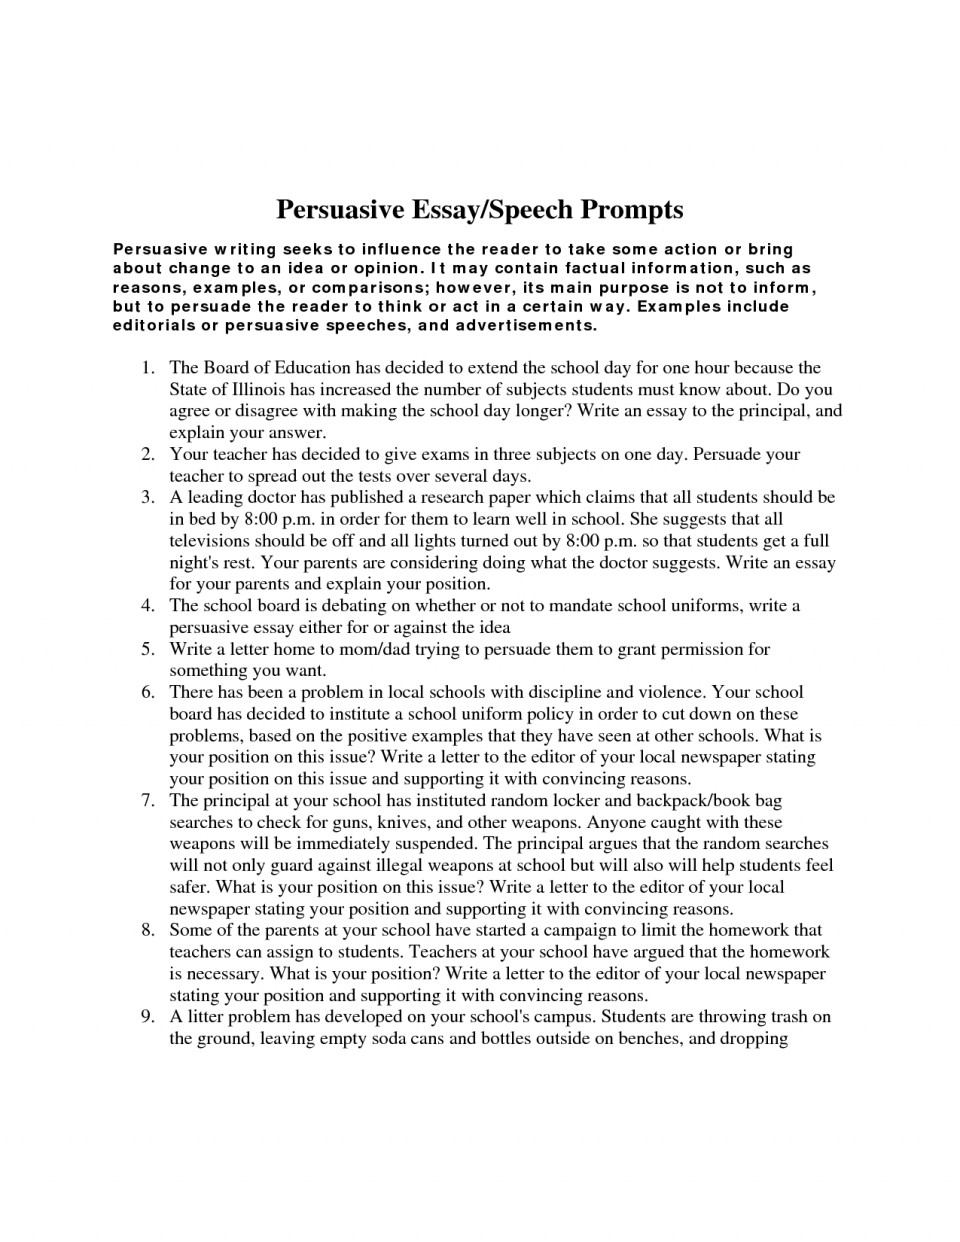 012 Essay Example Persuasive Prompts Informative Remarkable Topics 2018 For High School Prompt 4th Grade 960